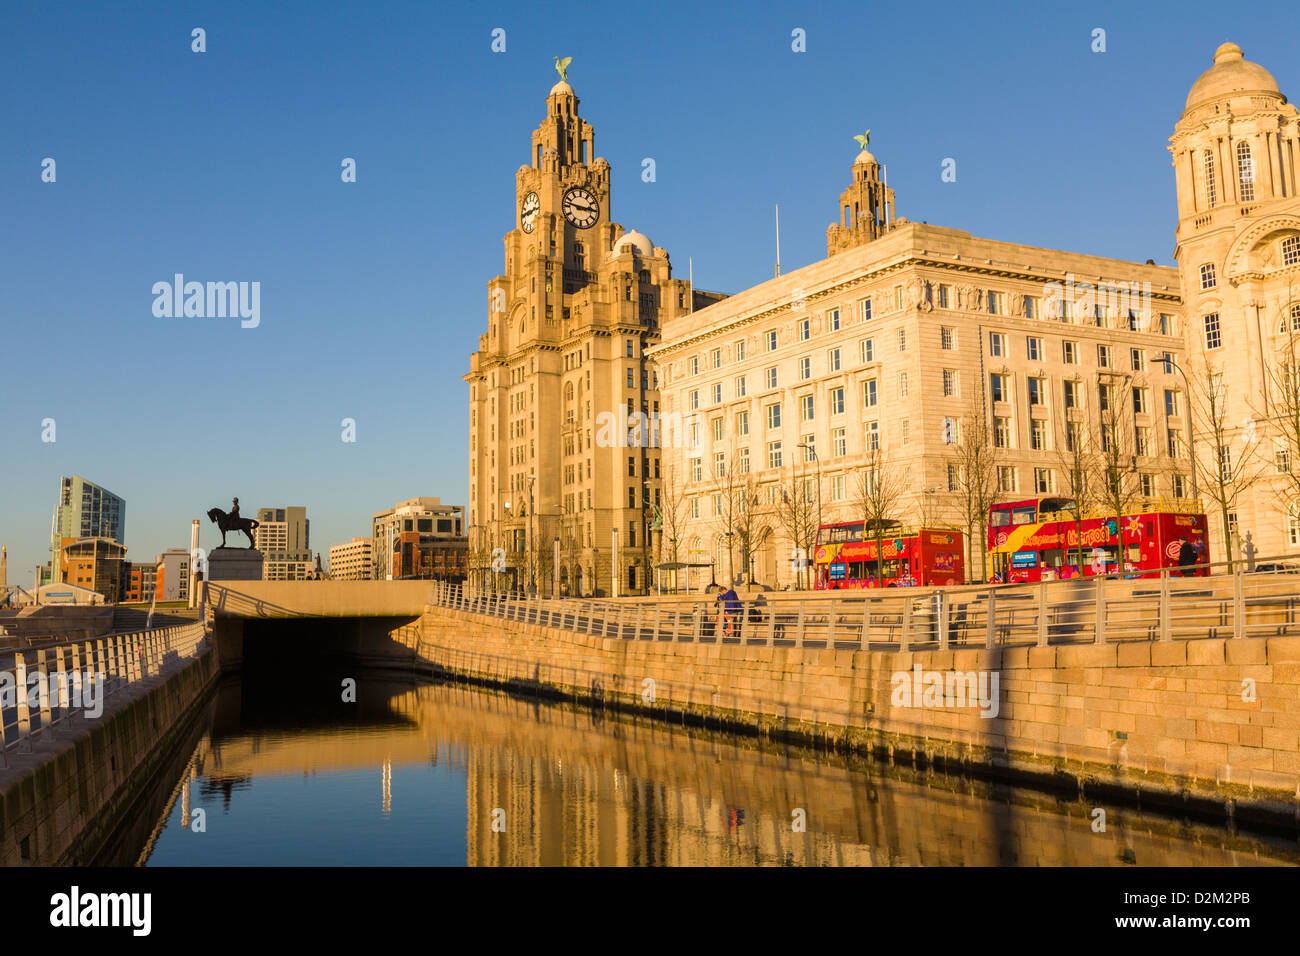 Liver Buildings, Liverpool, England - Stock Image